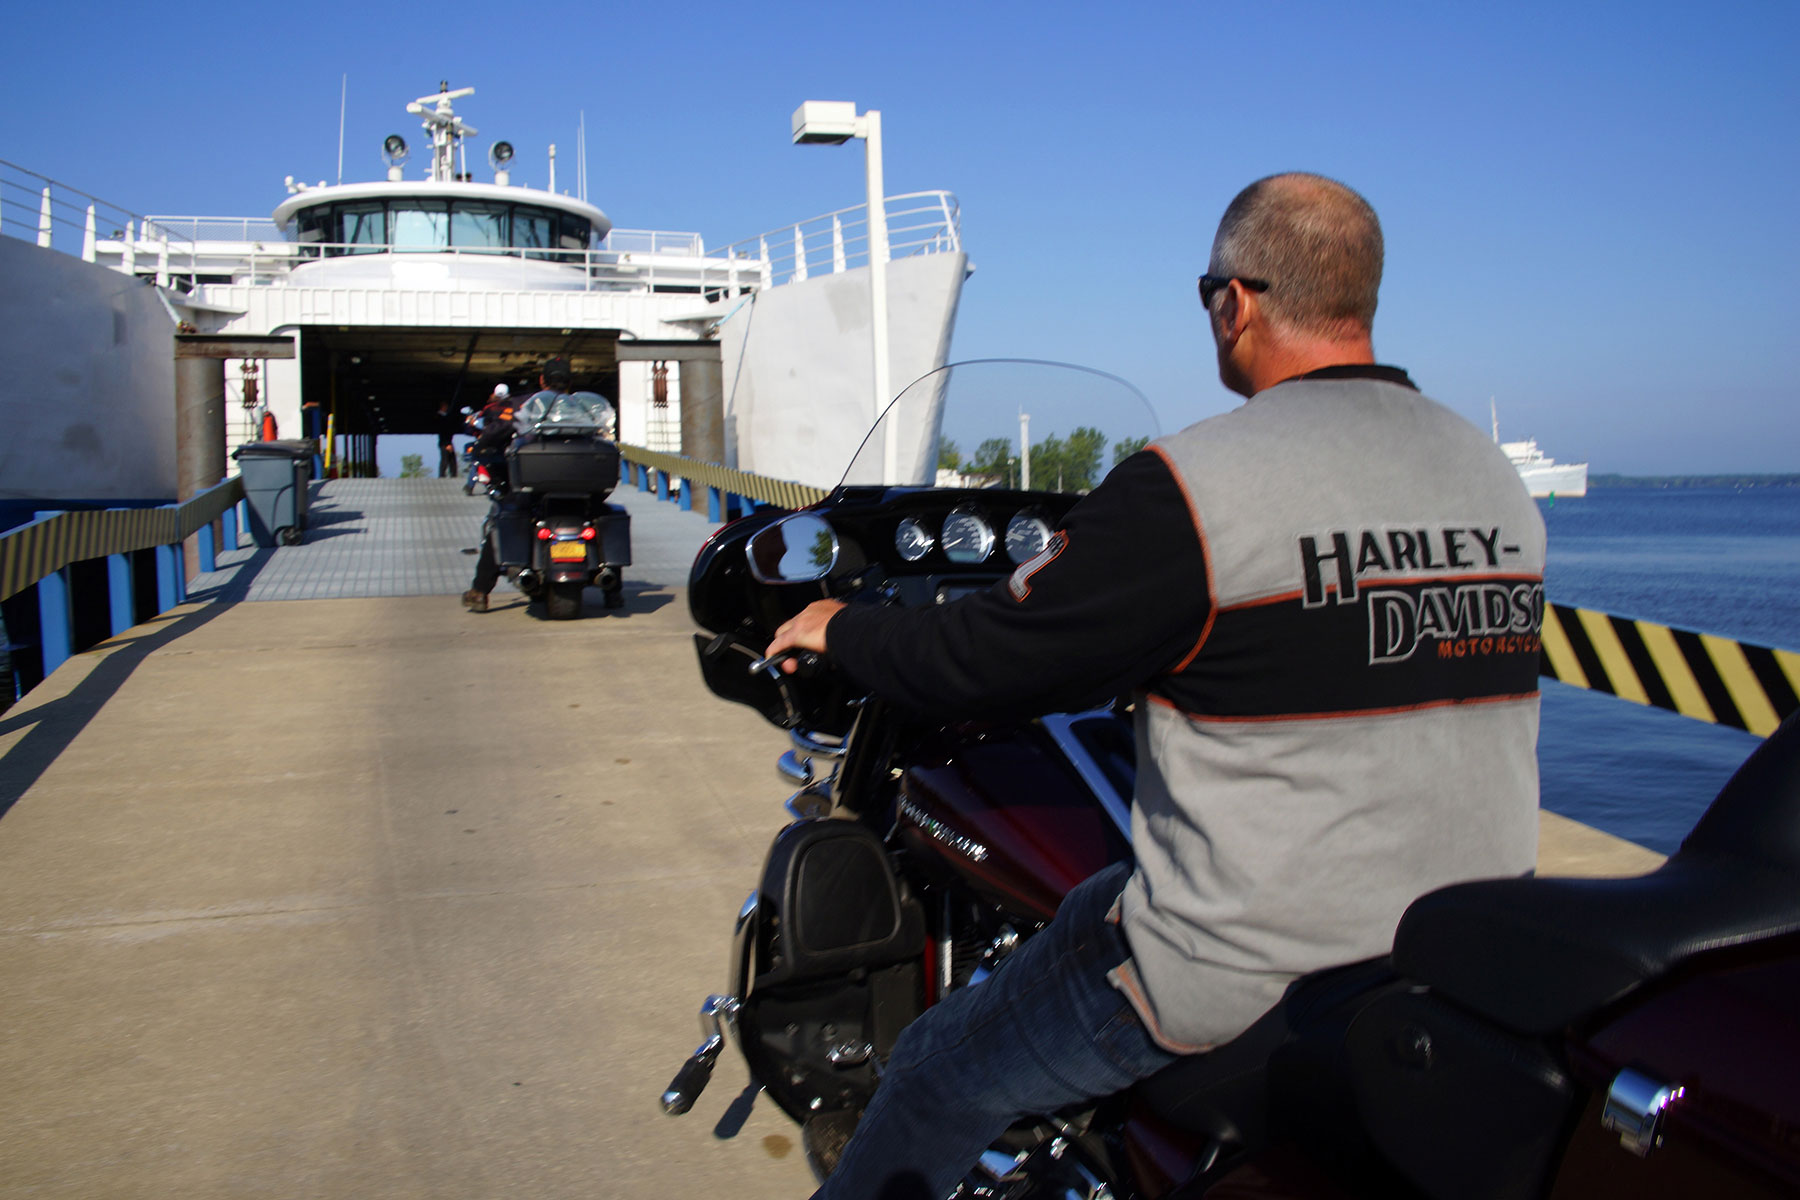 Harley Davidson Michigan >> Lake Michigan Shortcut Helped Harley Davidson Riders Float